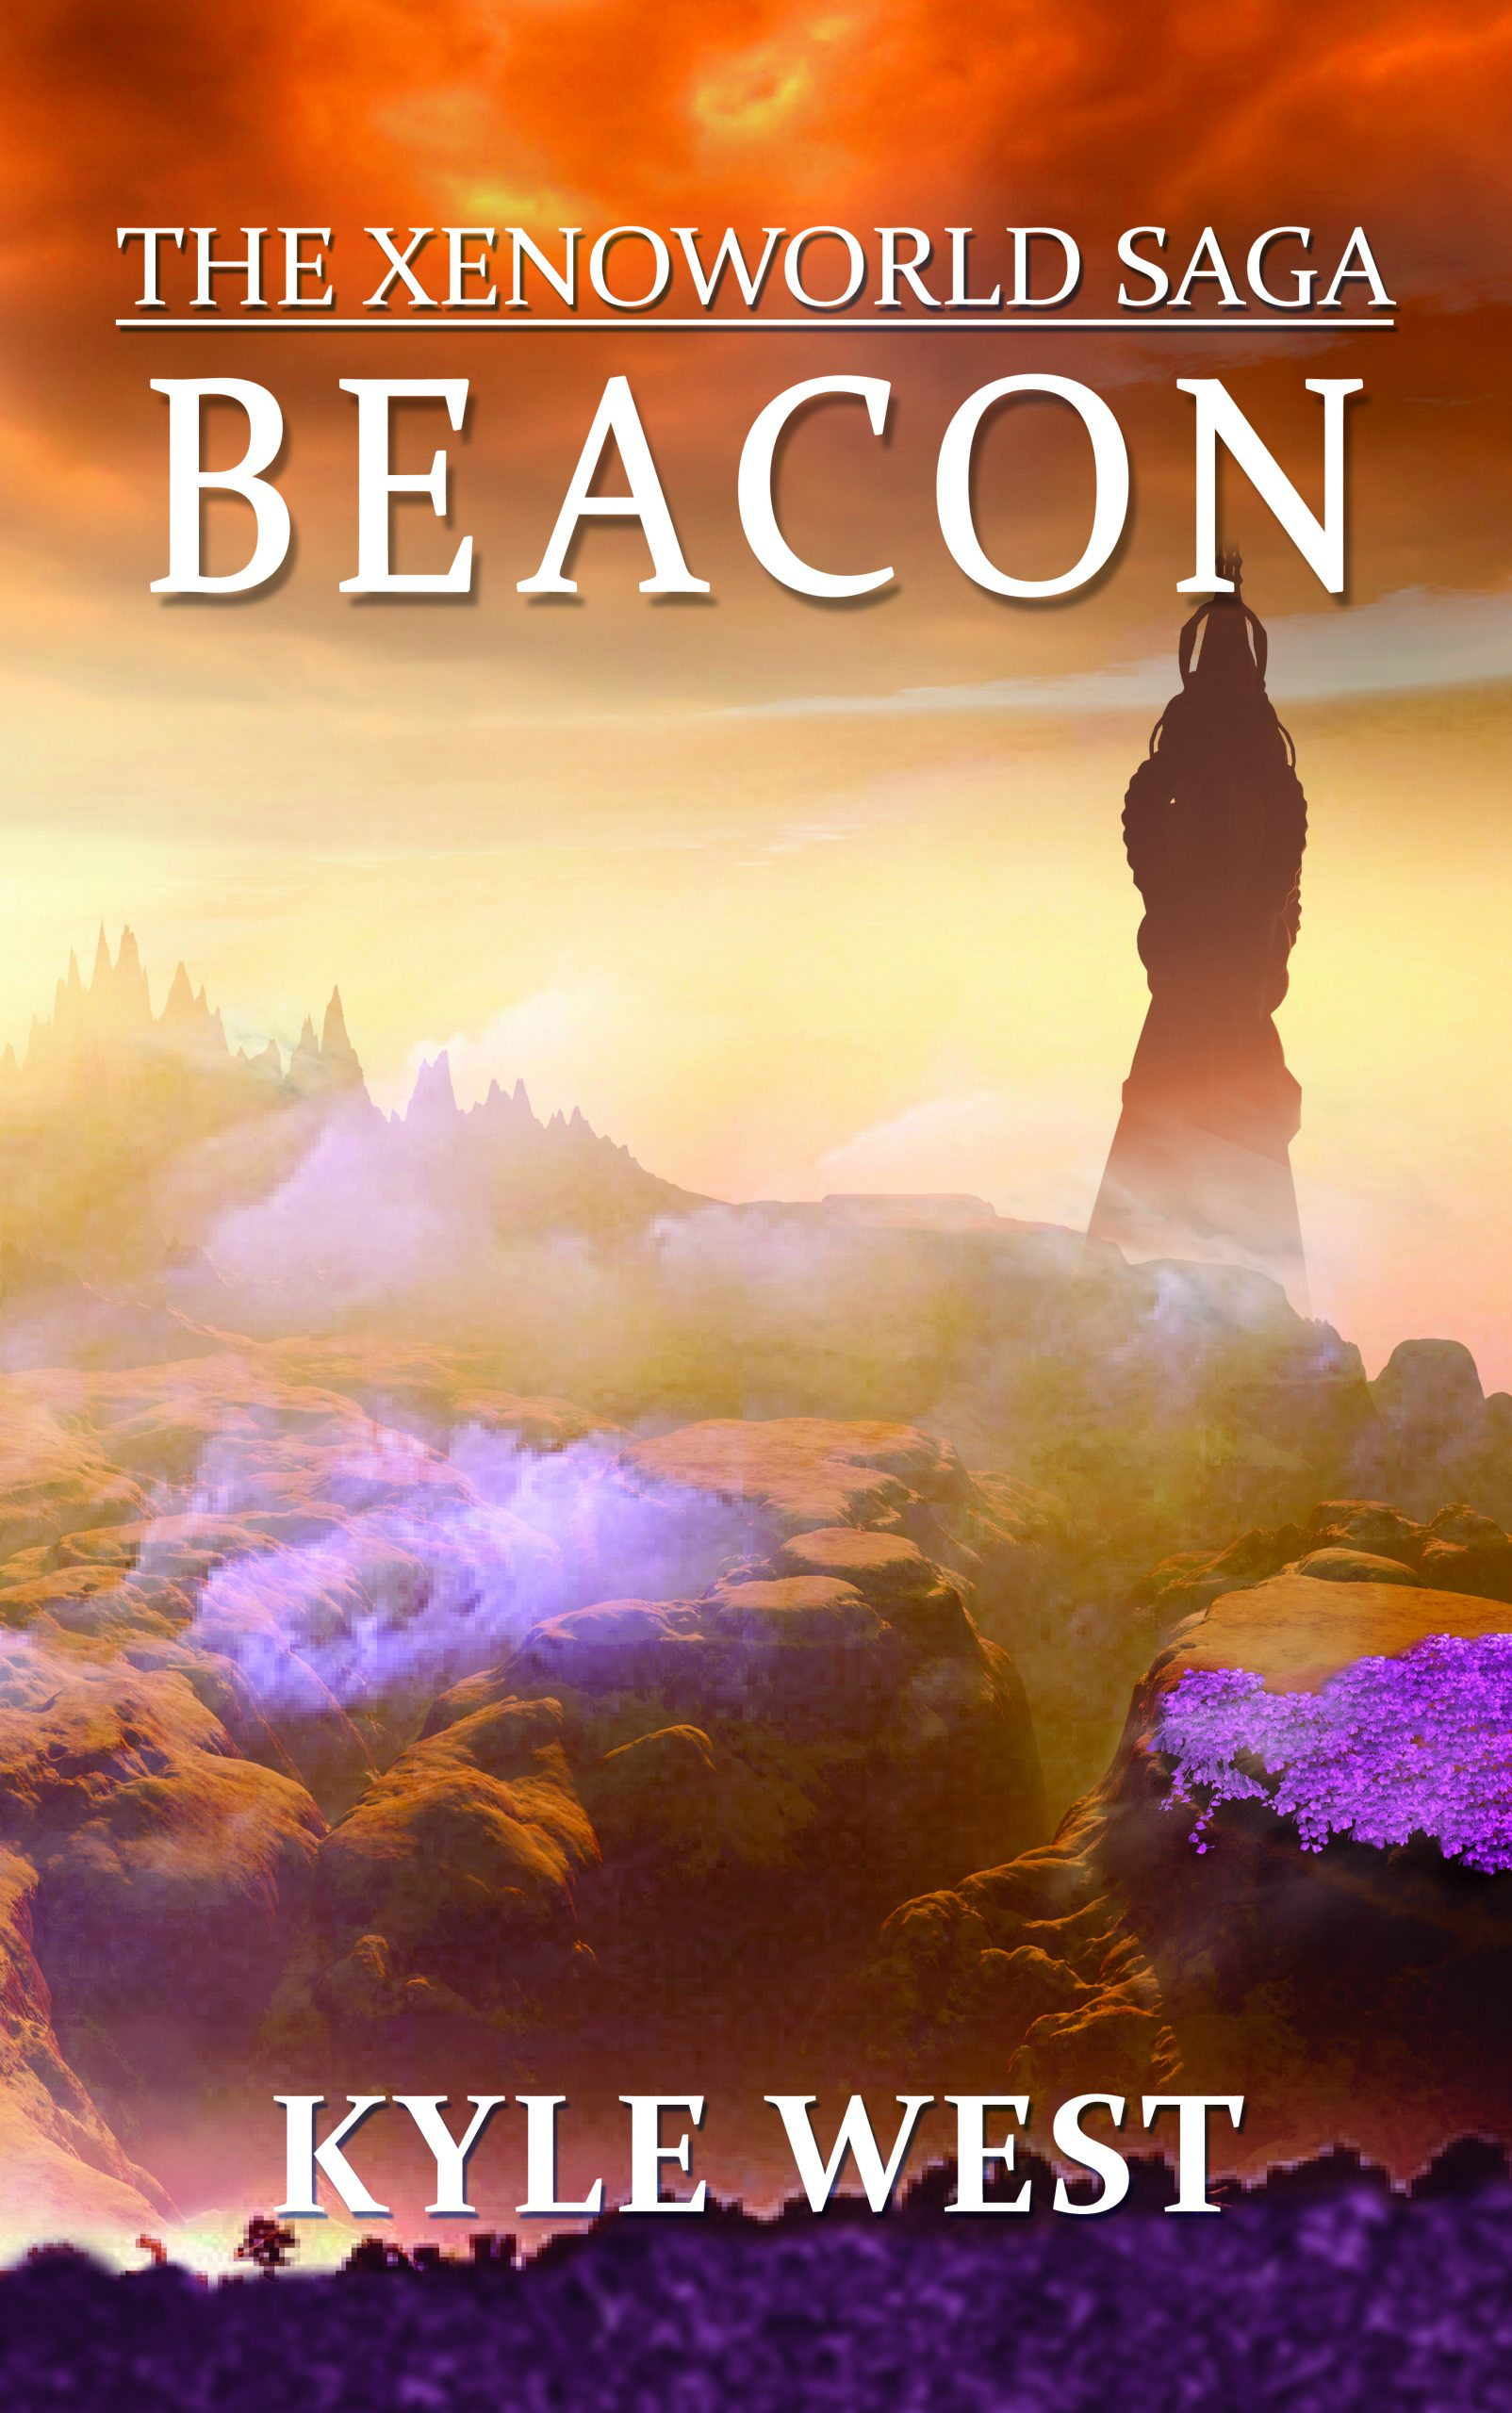 Beacon is Out